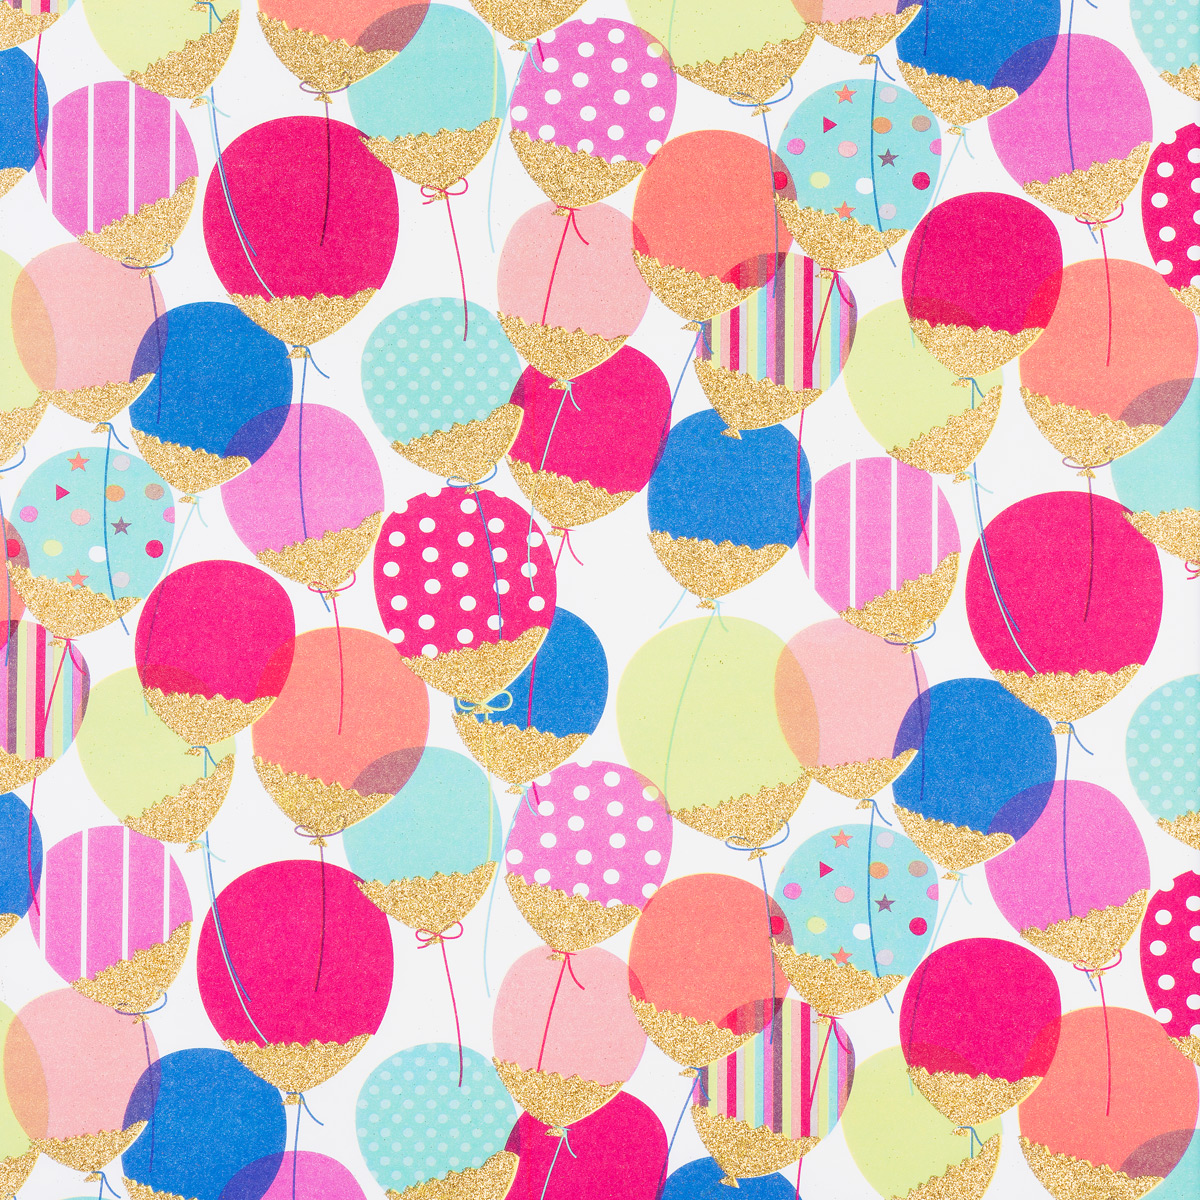 Glitter Balloons Wrapping Paper